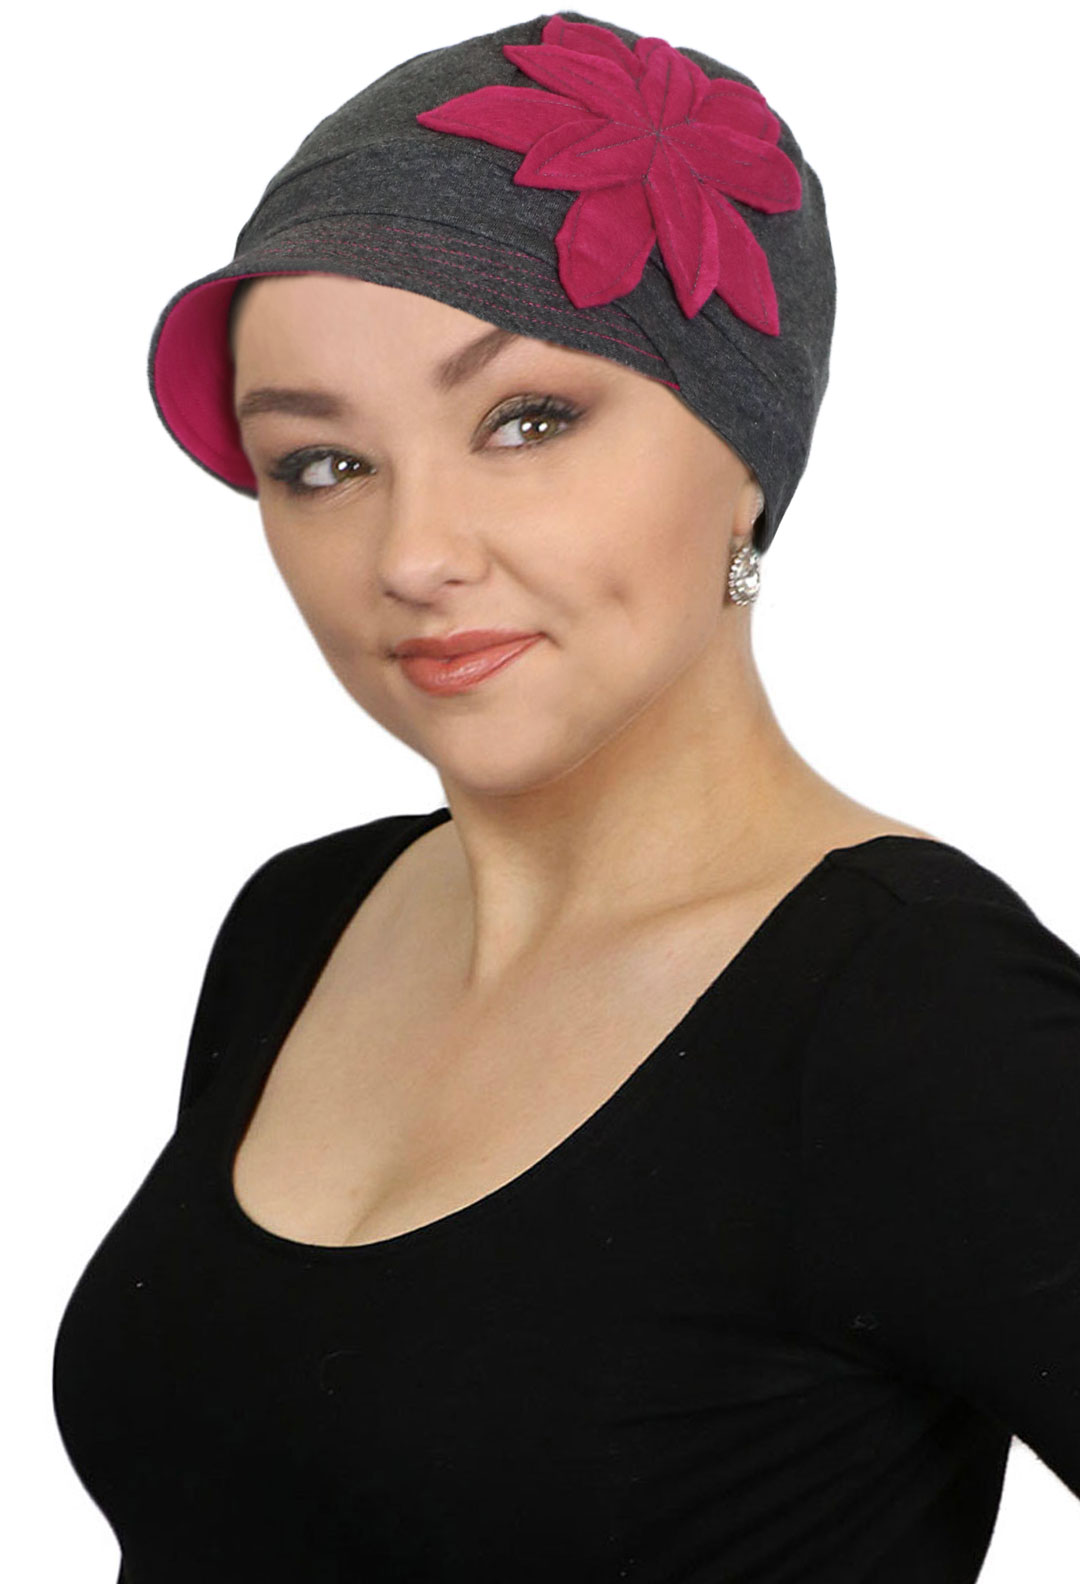 f0981a859 Chemo Hats for Women Cancer Headwear Headcoverings Soft Cotton Cute  Baseball Caps (Pink Cadillac)